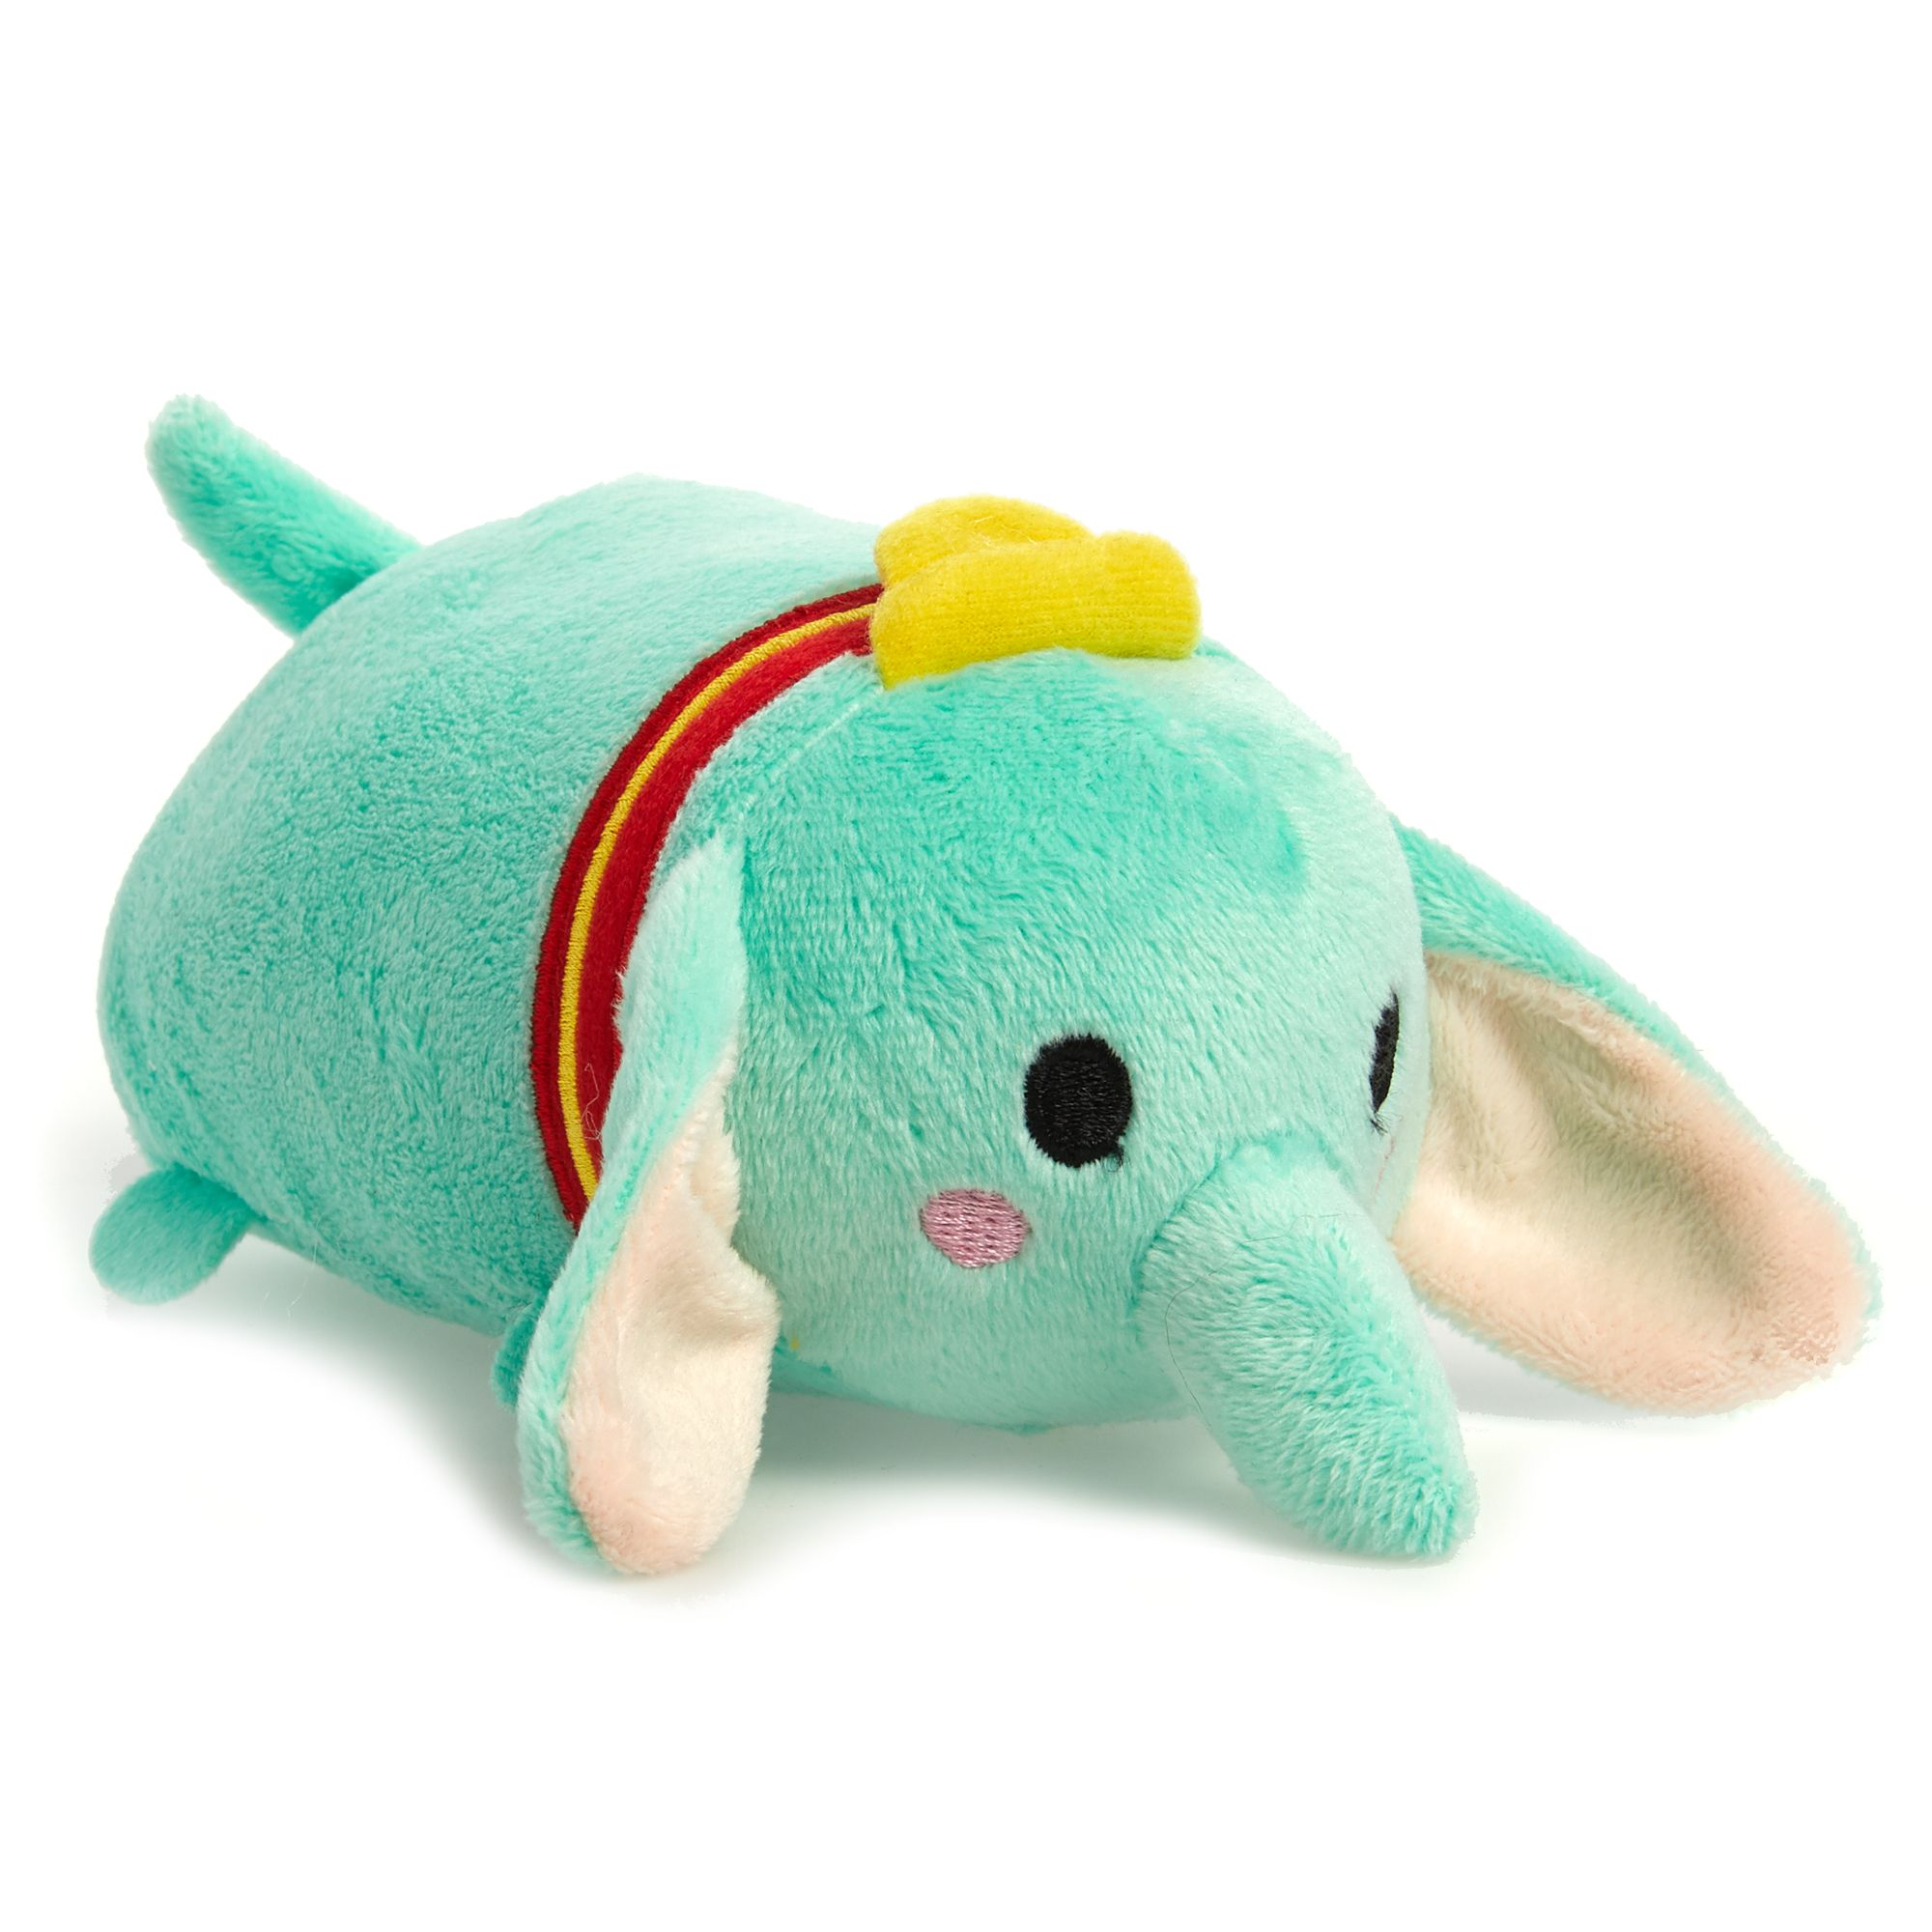 "Disney Dumbo ""Tsum Tsum"" Dog Toy - Plush, Squeaker size: Small 5274220"